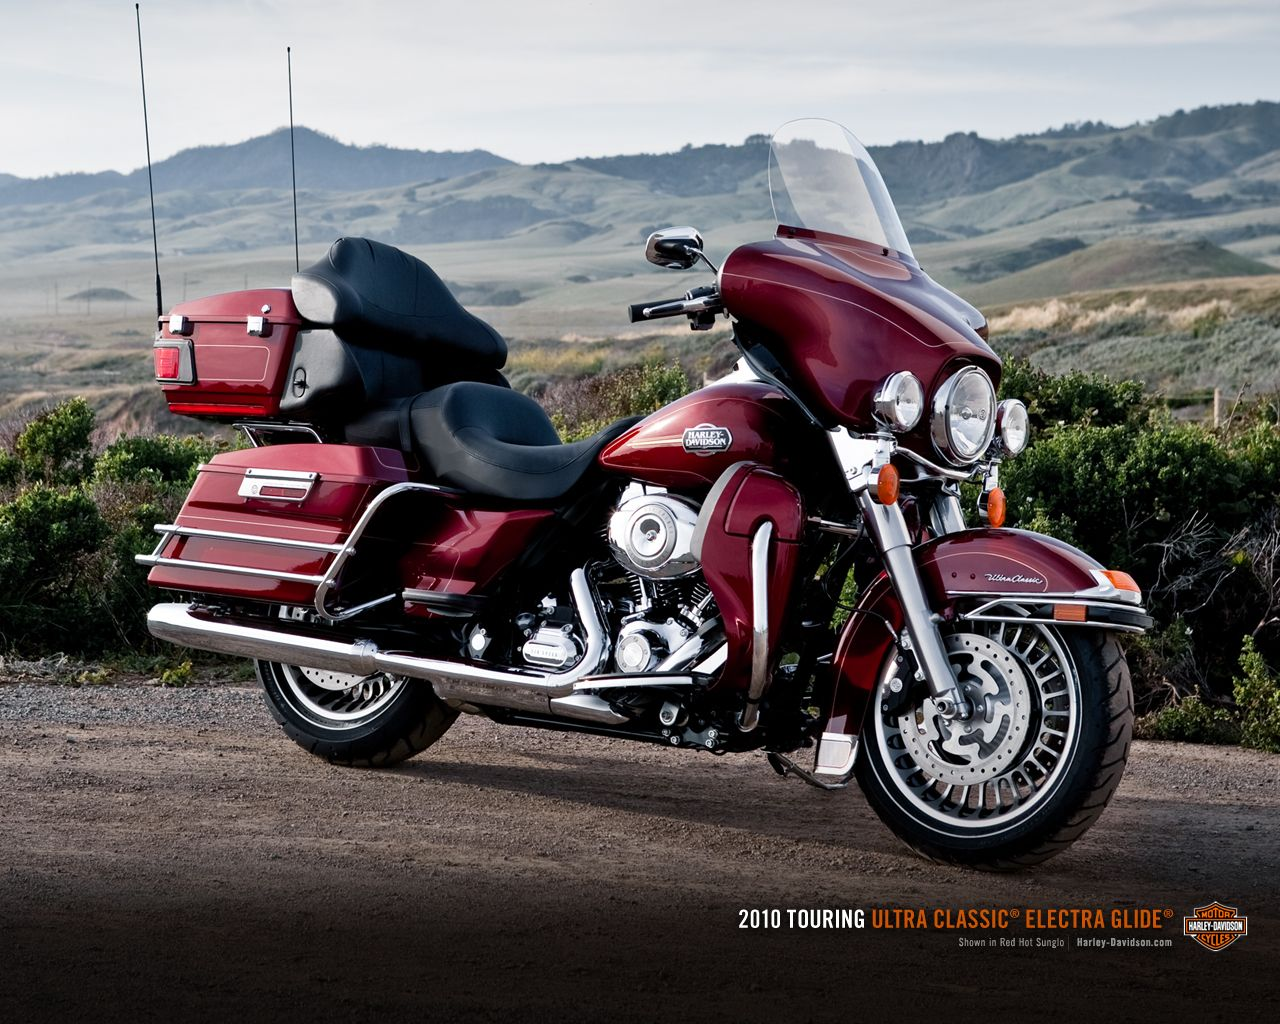 Touring Ultra Classic Electra Glide Electra Glide Classic Harley Davidson Motorcycles Classic Bikes